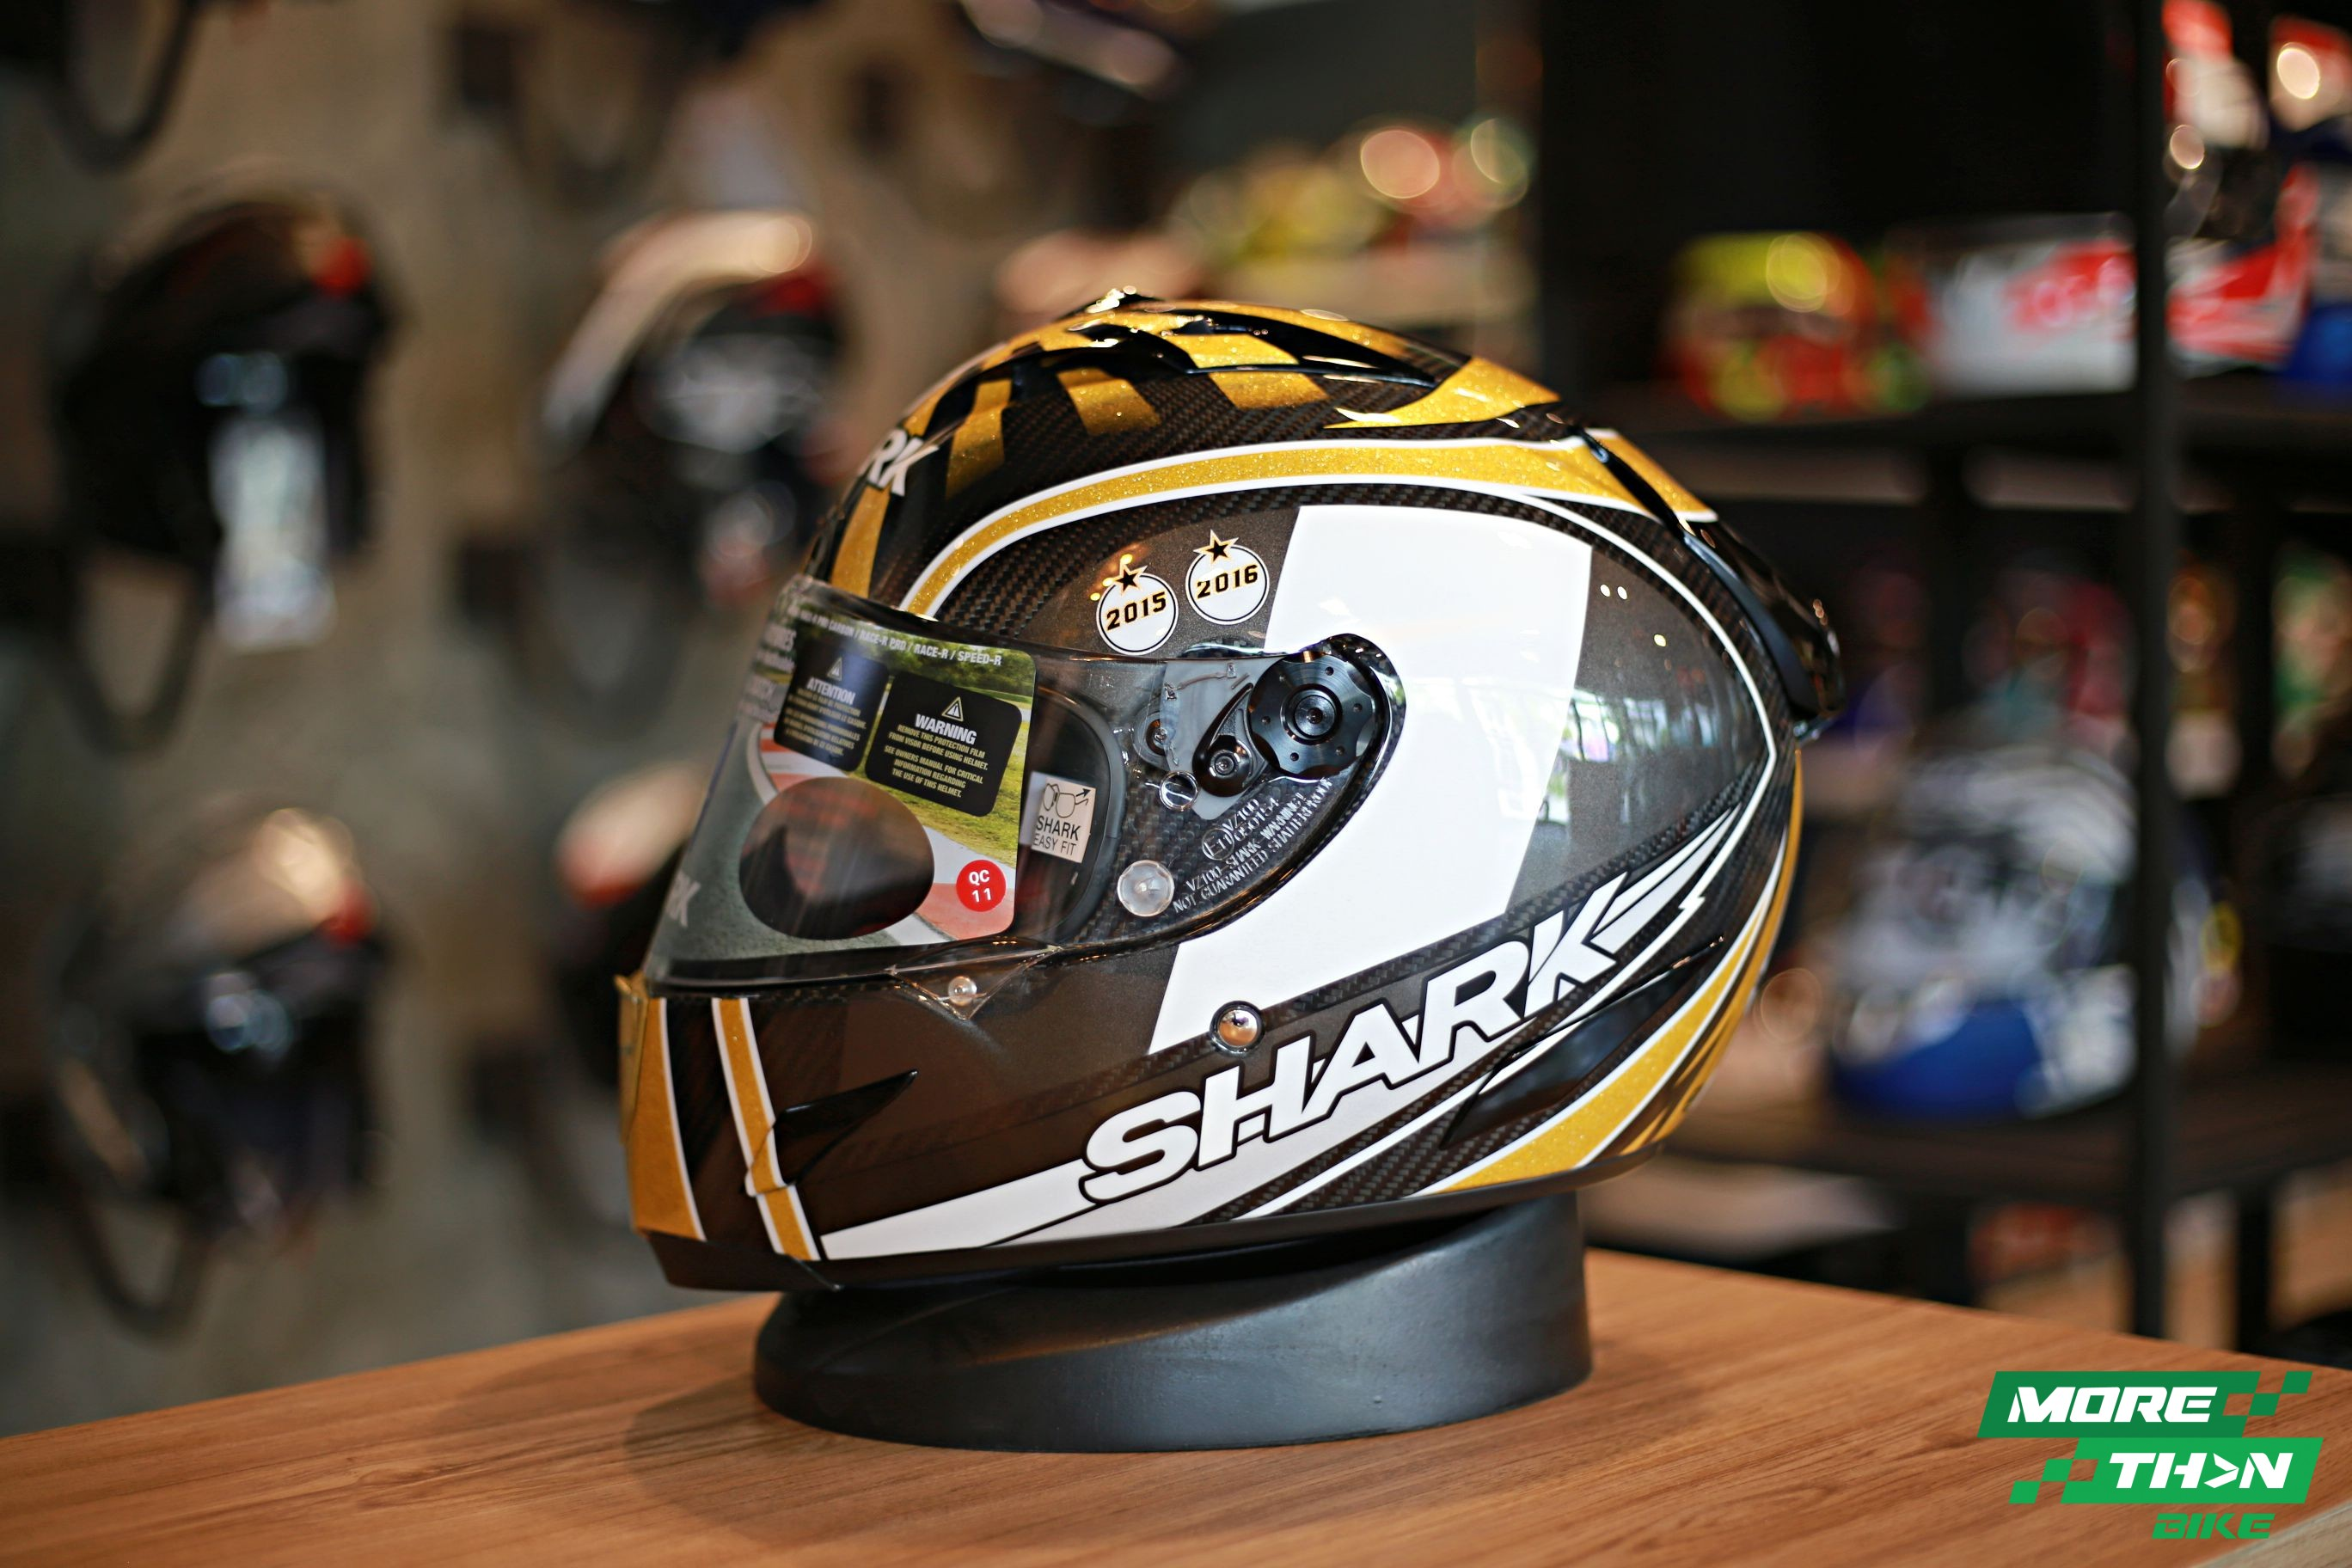 shark-carbon-race-r-pro-zarco-world-champion- 2016-1